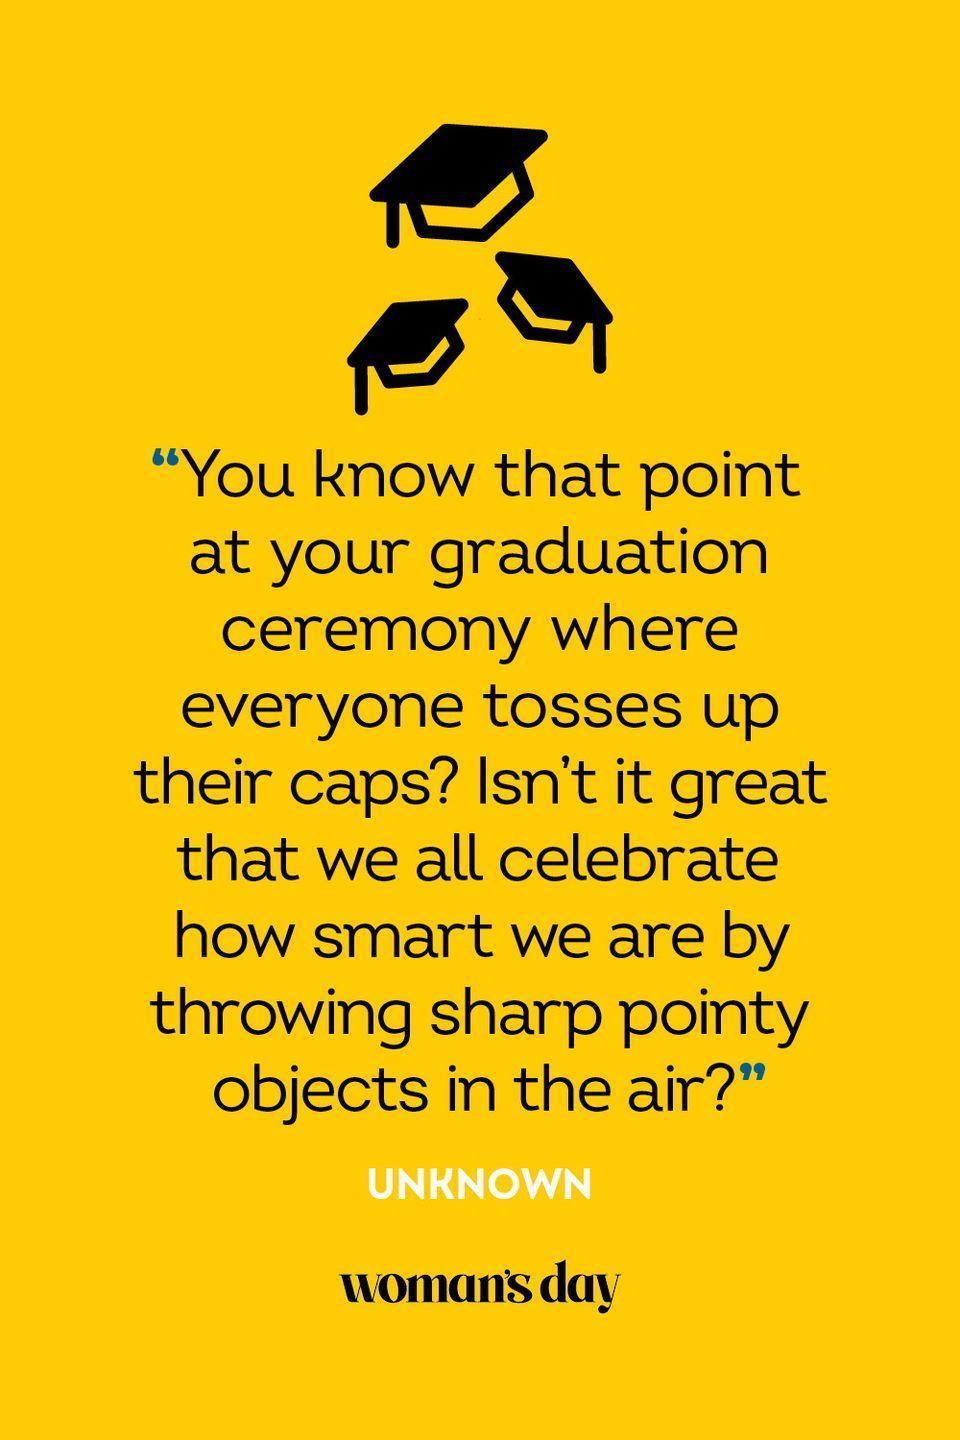 """<p>""""You know that point at your graduation ceremony where everyone tosses up their caps? Isn't it great that we all celebrate how smart we are by throwing sharp pointy objects in the air?""""</p>"""